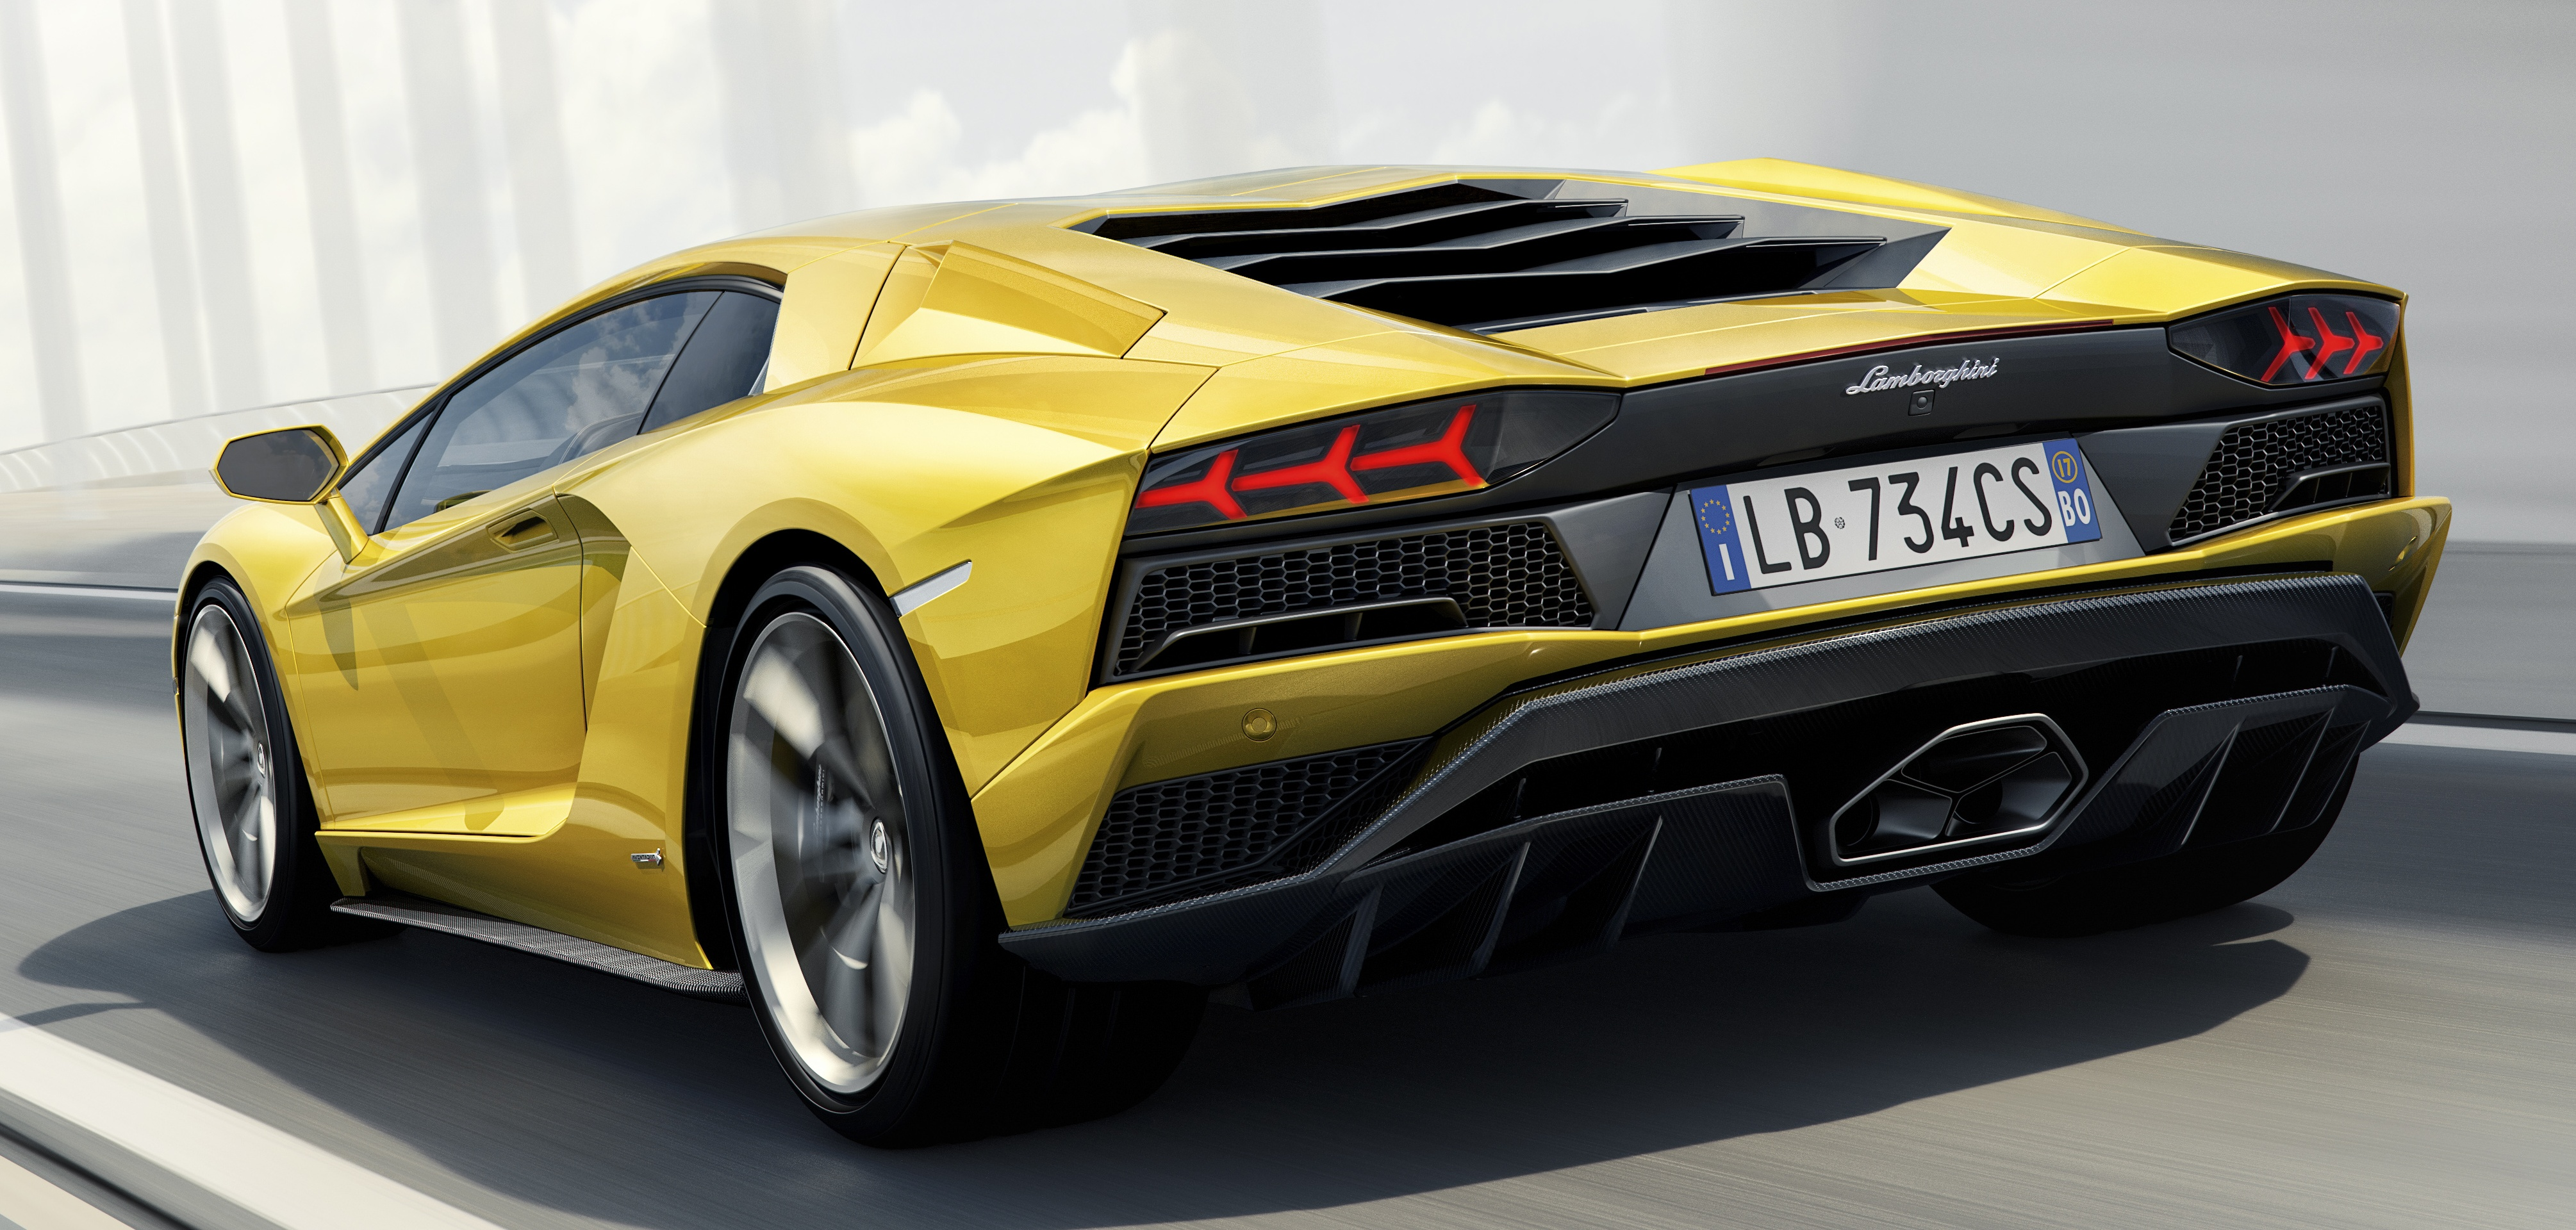 It Has A Refined Look Compared To Its Predecessor, The Aventador, Launched  In 2011,u201d He Was Quoted By The News Agency As Saying. Image: Lamborghini